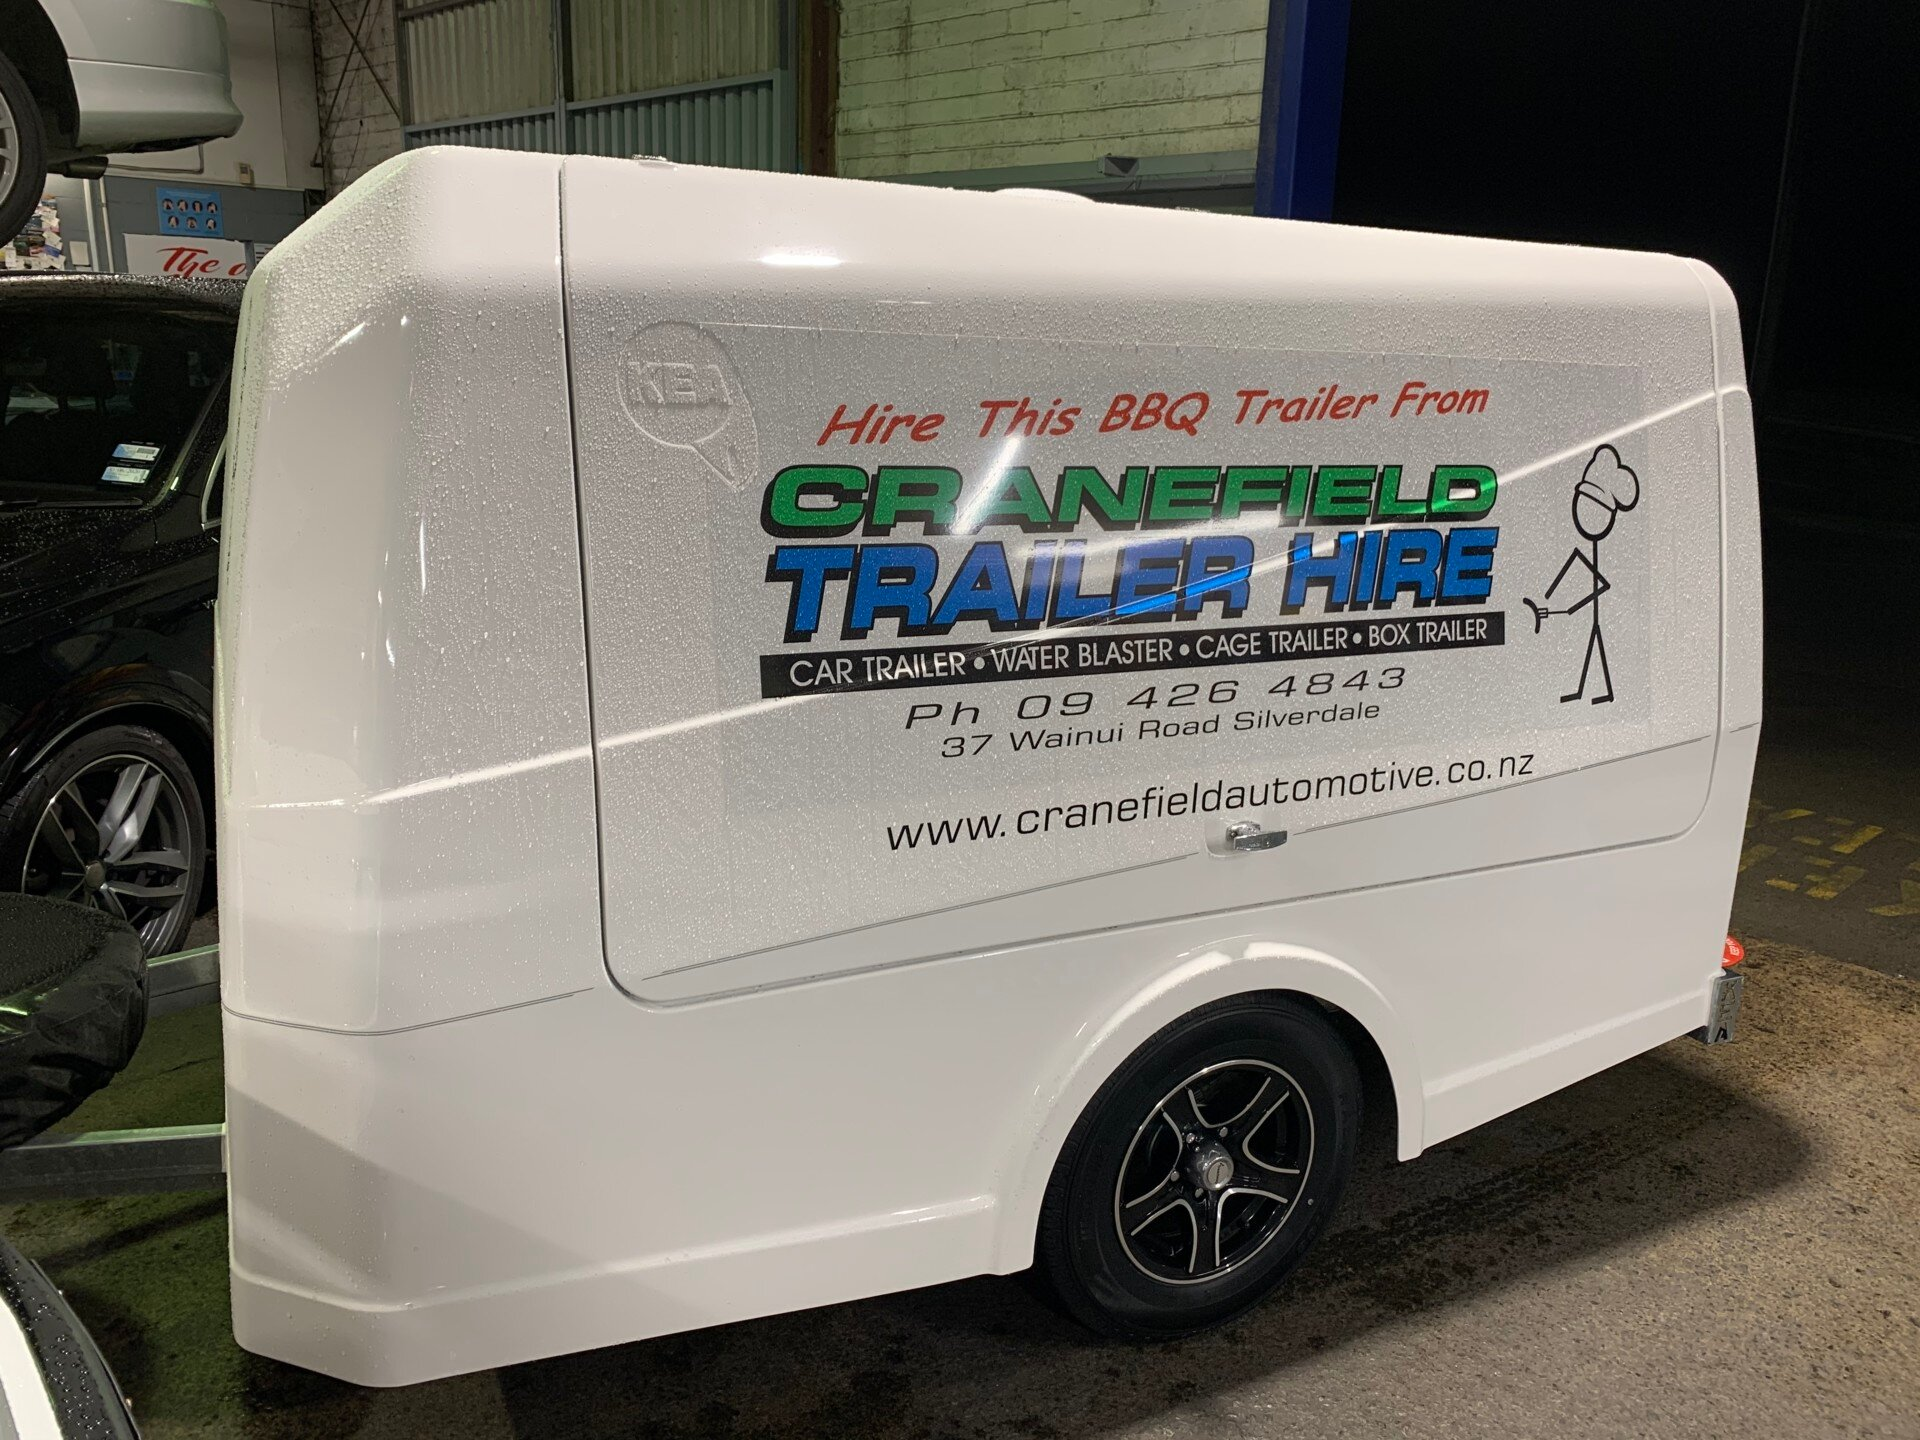 bbq trailer for hire